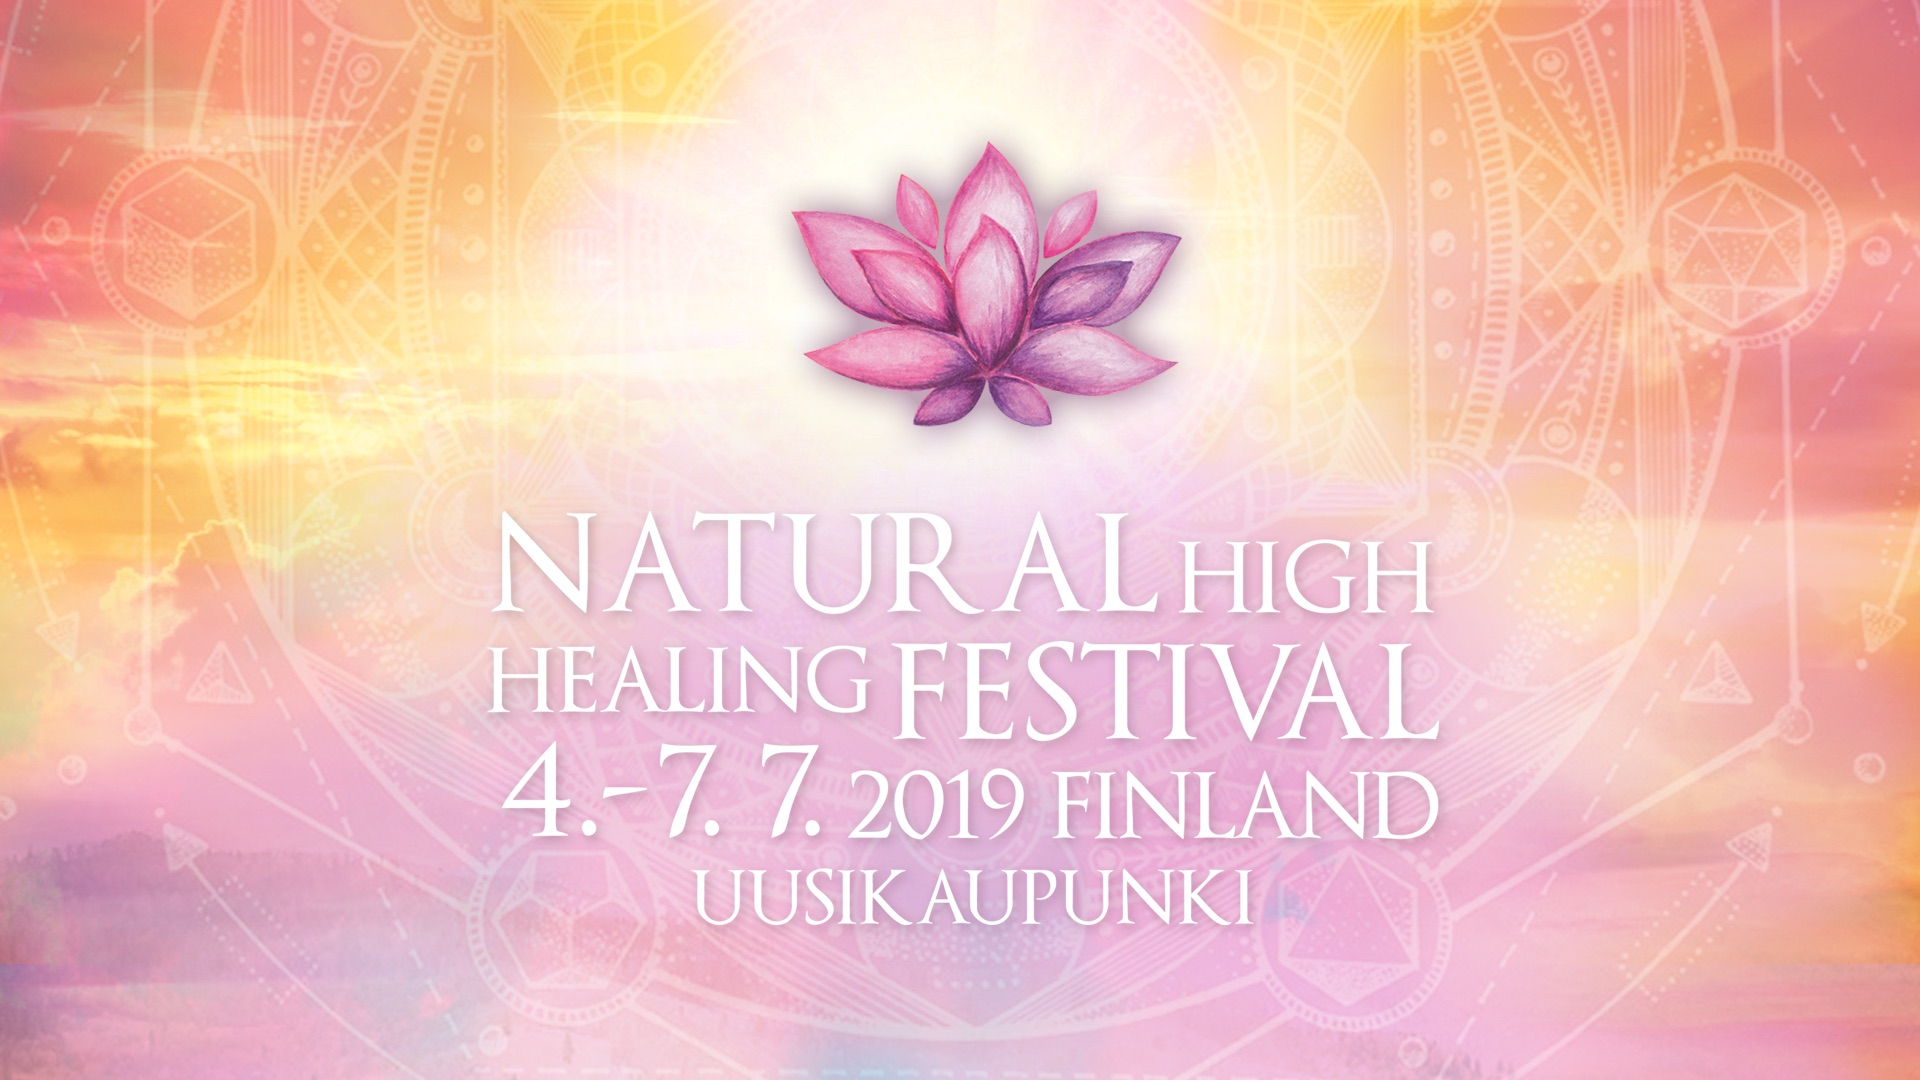 Natural High Healing Festival in Finland